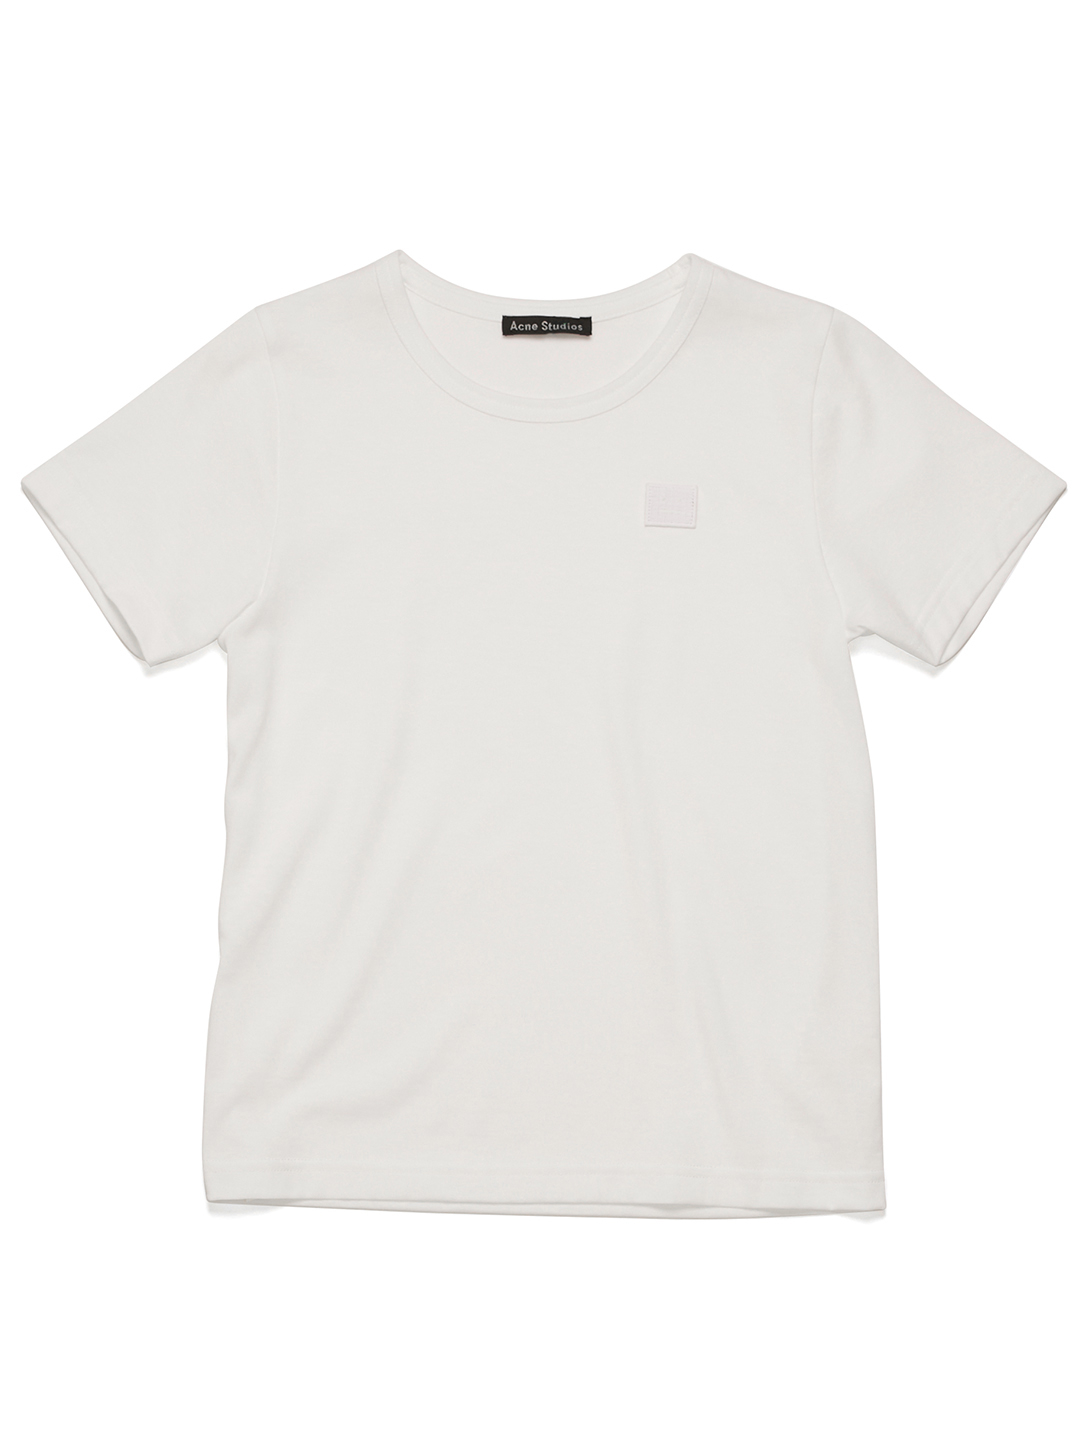 ACNE STUDIOS Kids' Mini Nash Face Cotton T-Shirt Kids White